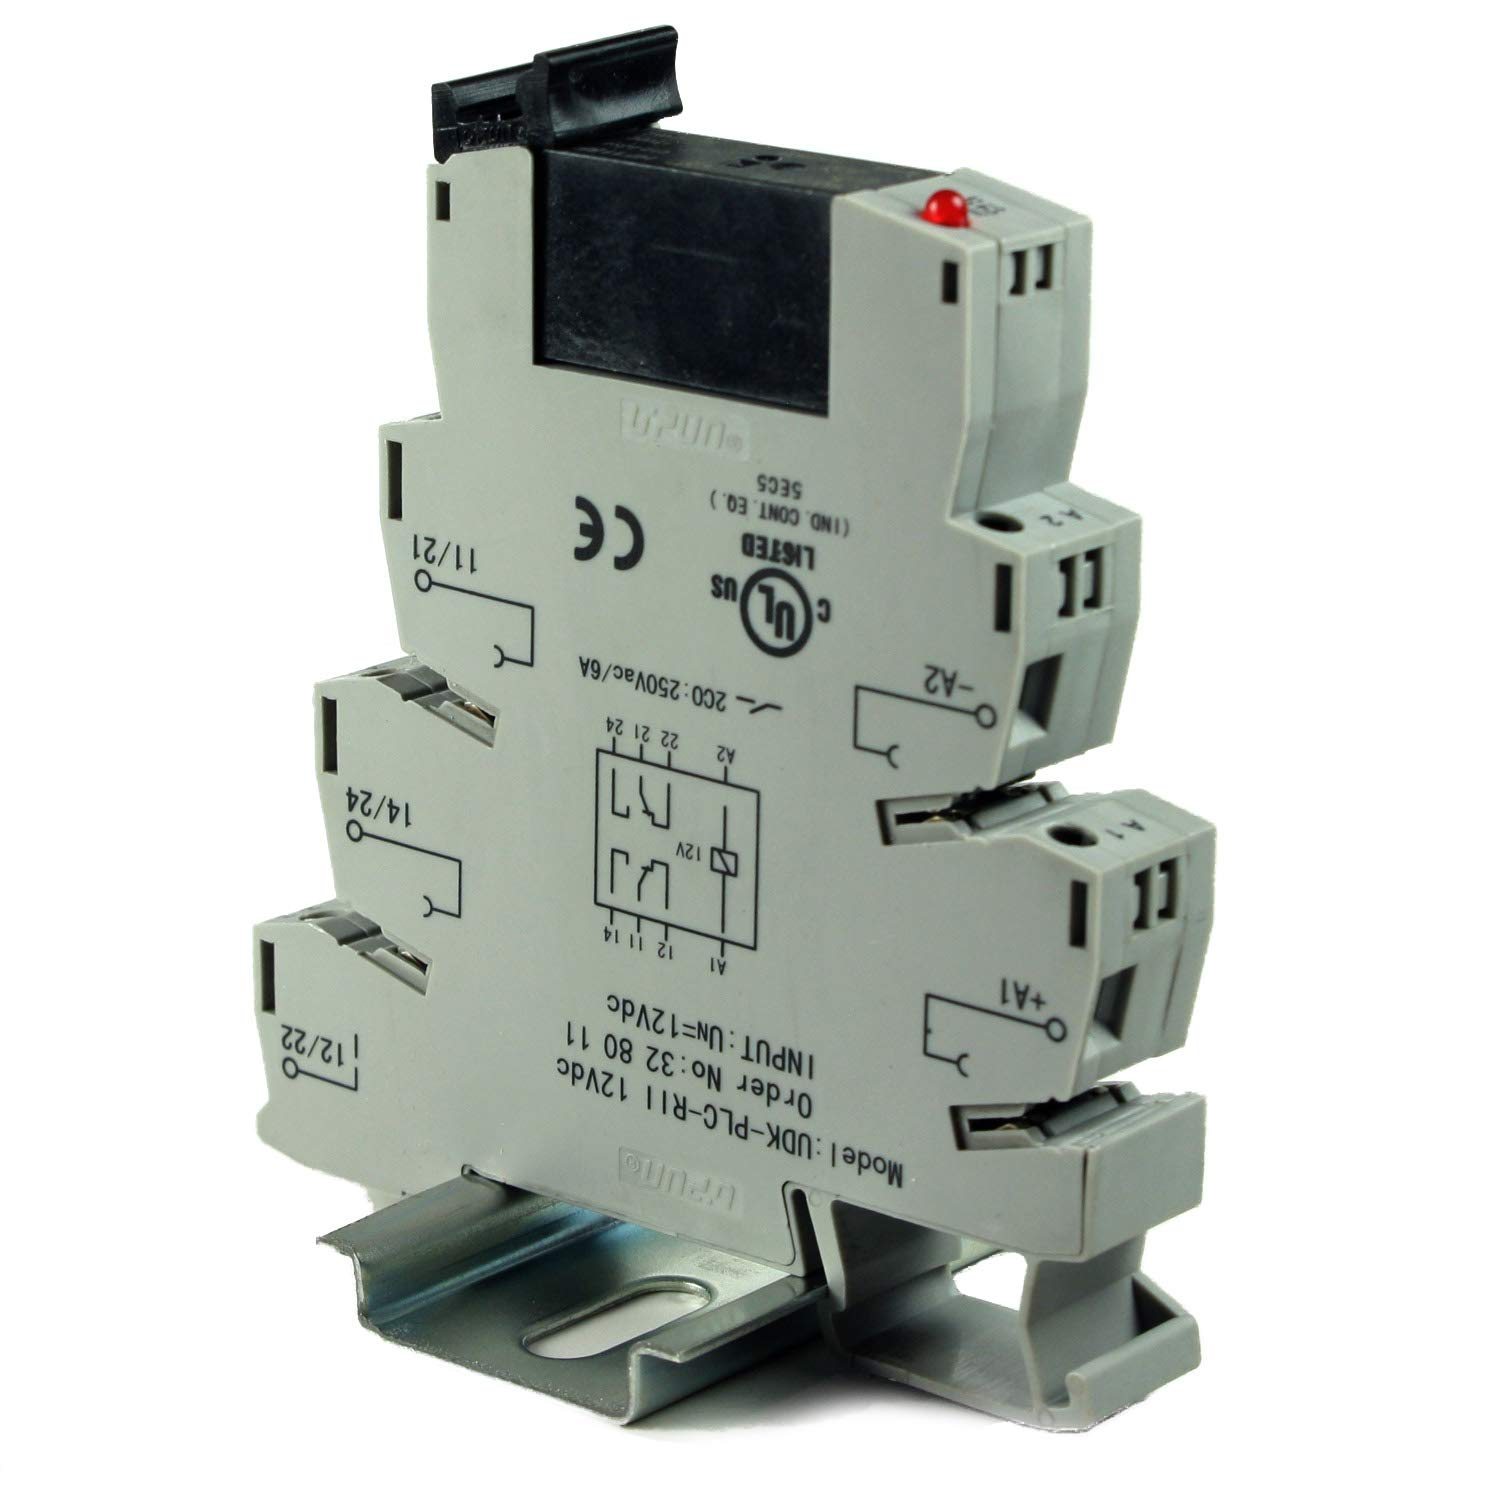 ASI ASI328011 Pluggable DPDT Relay with DIN Rail Mount Screw Clamp Terminal Block Base, 12 VDC Coil, 8 Amp, 250 VAC Rating